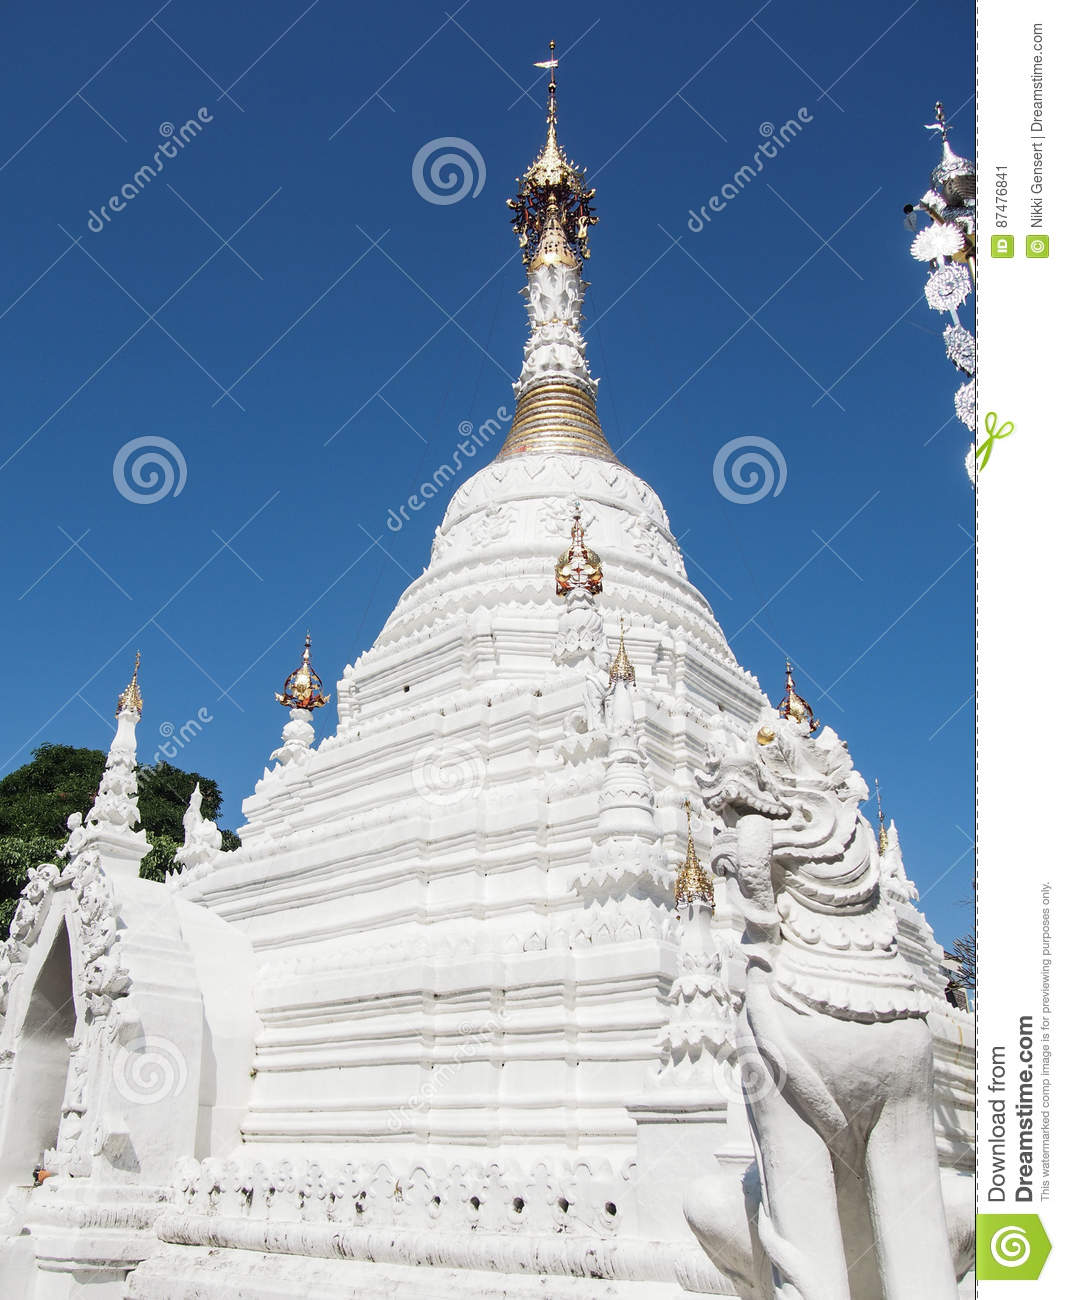 White Stupa at Temple in Chiang Mai Thailand